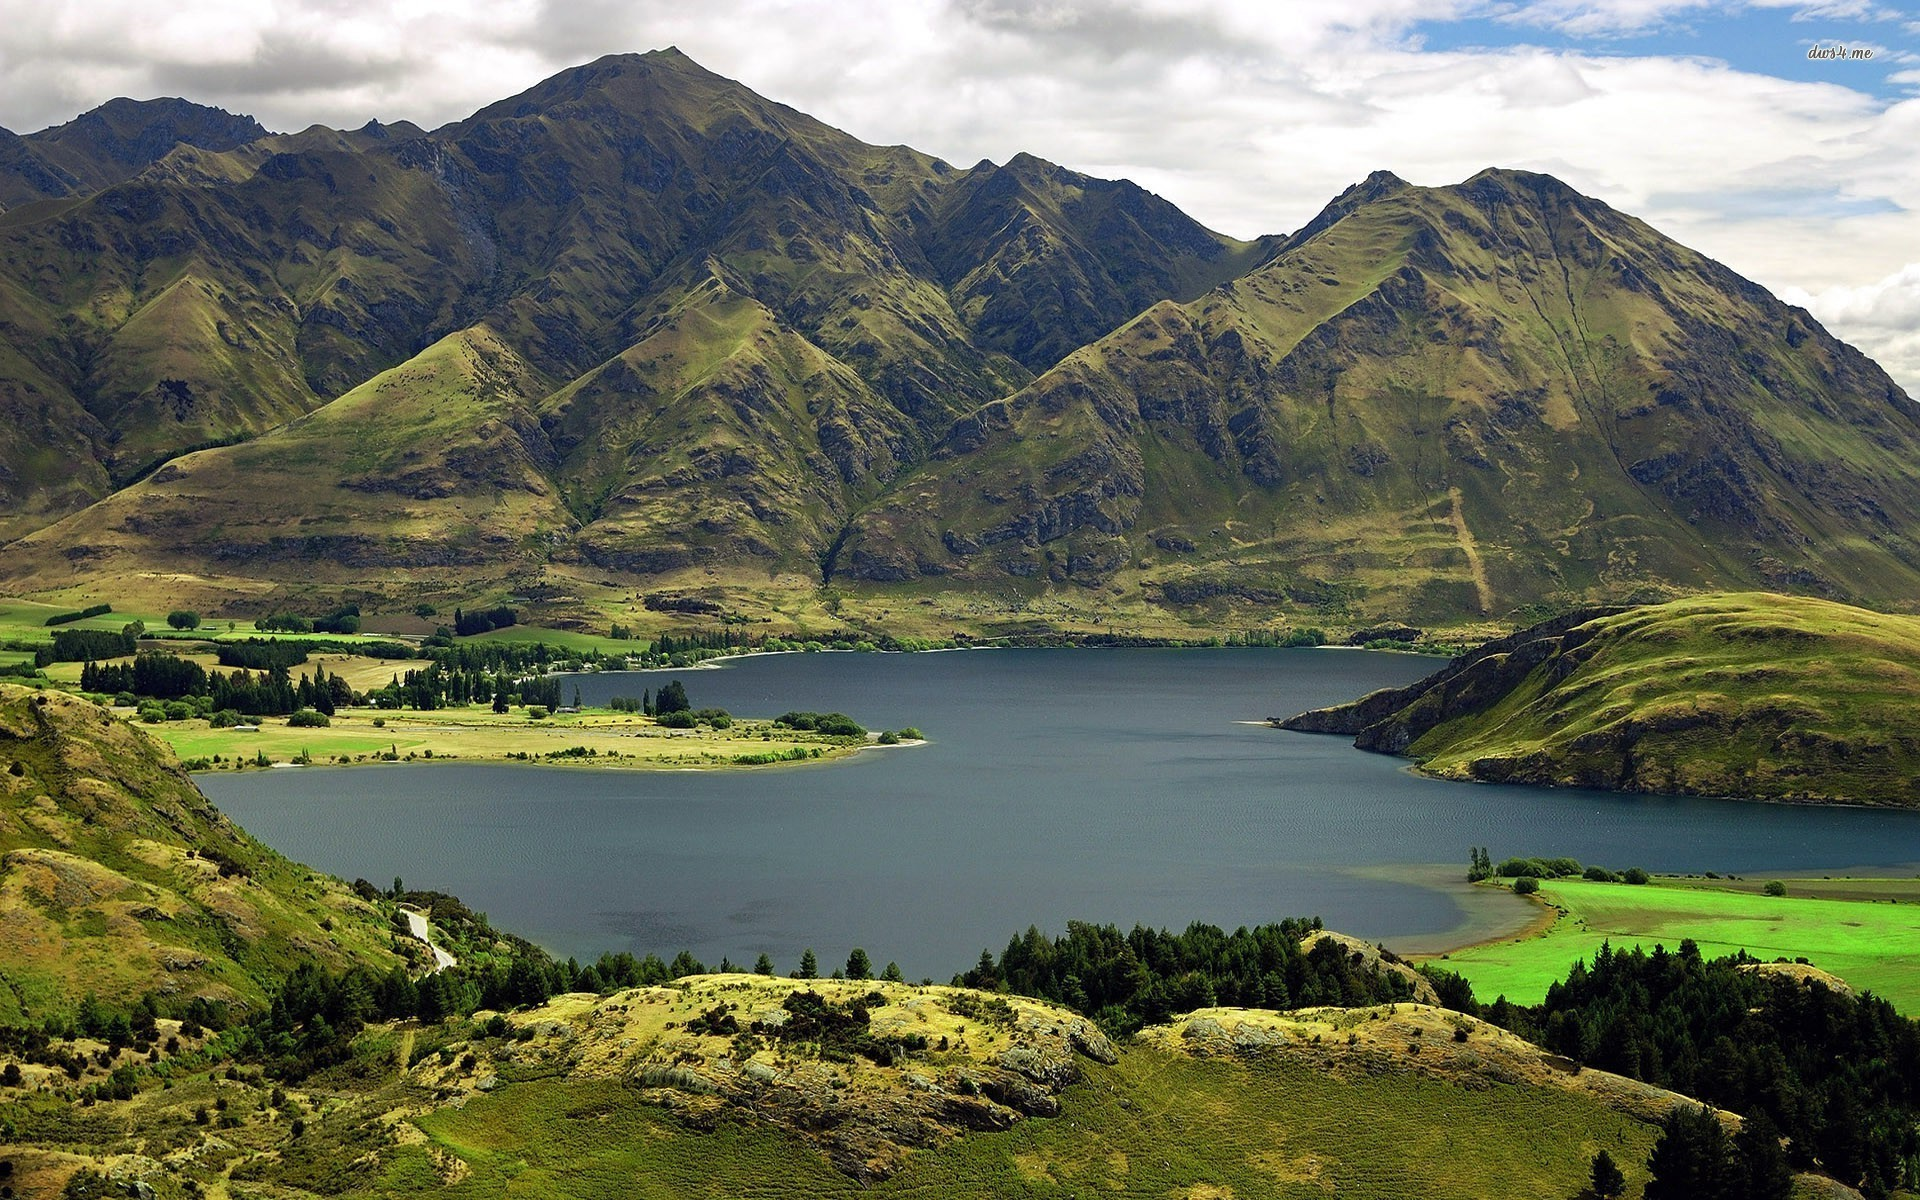 Ooty Hd Wallpapers Lake Wanaka Otago New Zealand Wallpapers Lake Wanaka